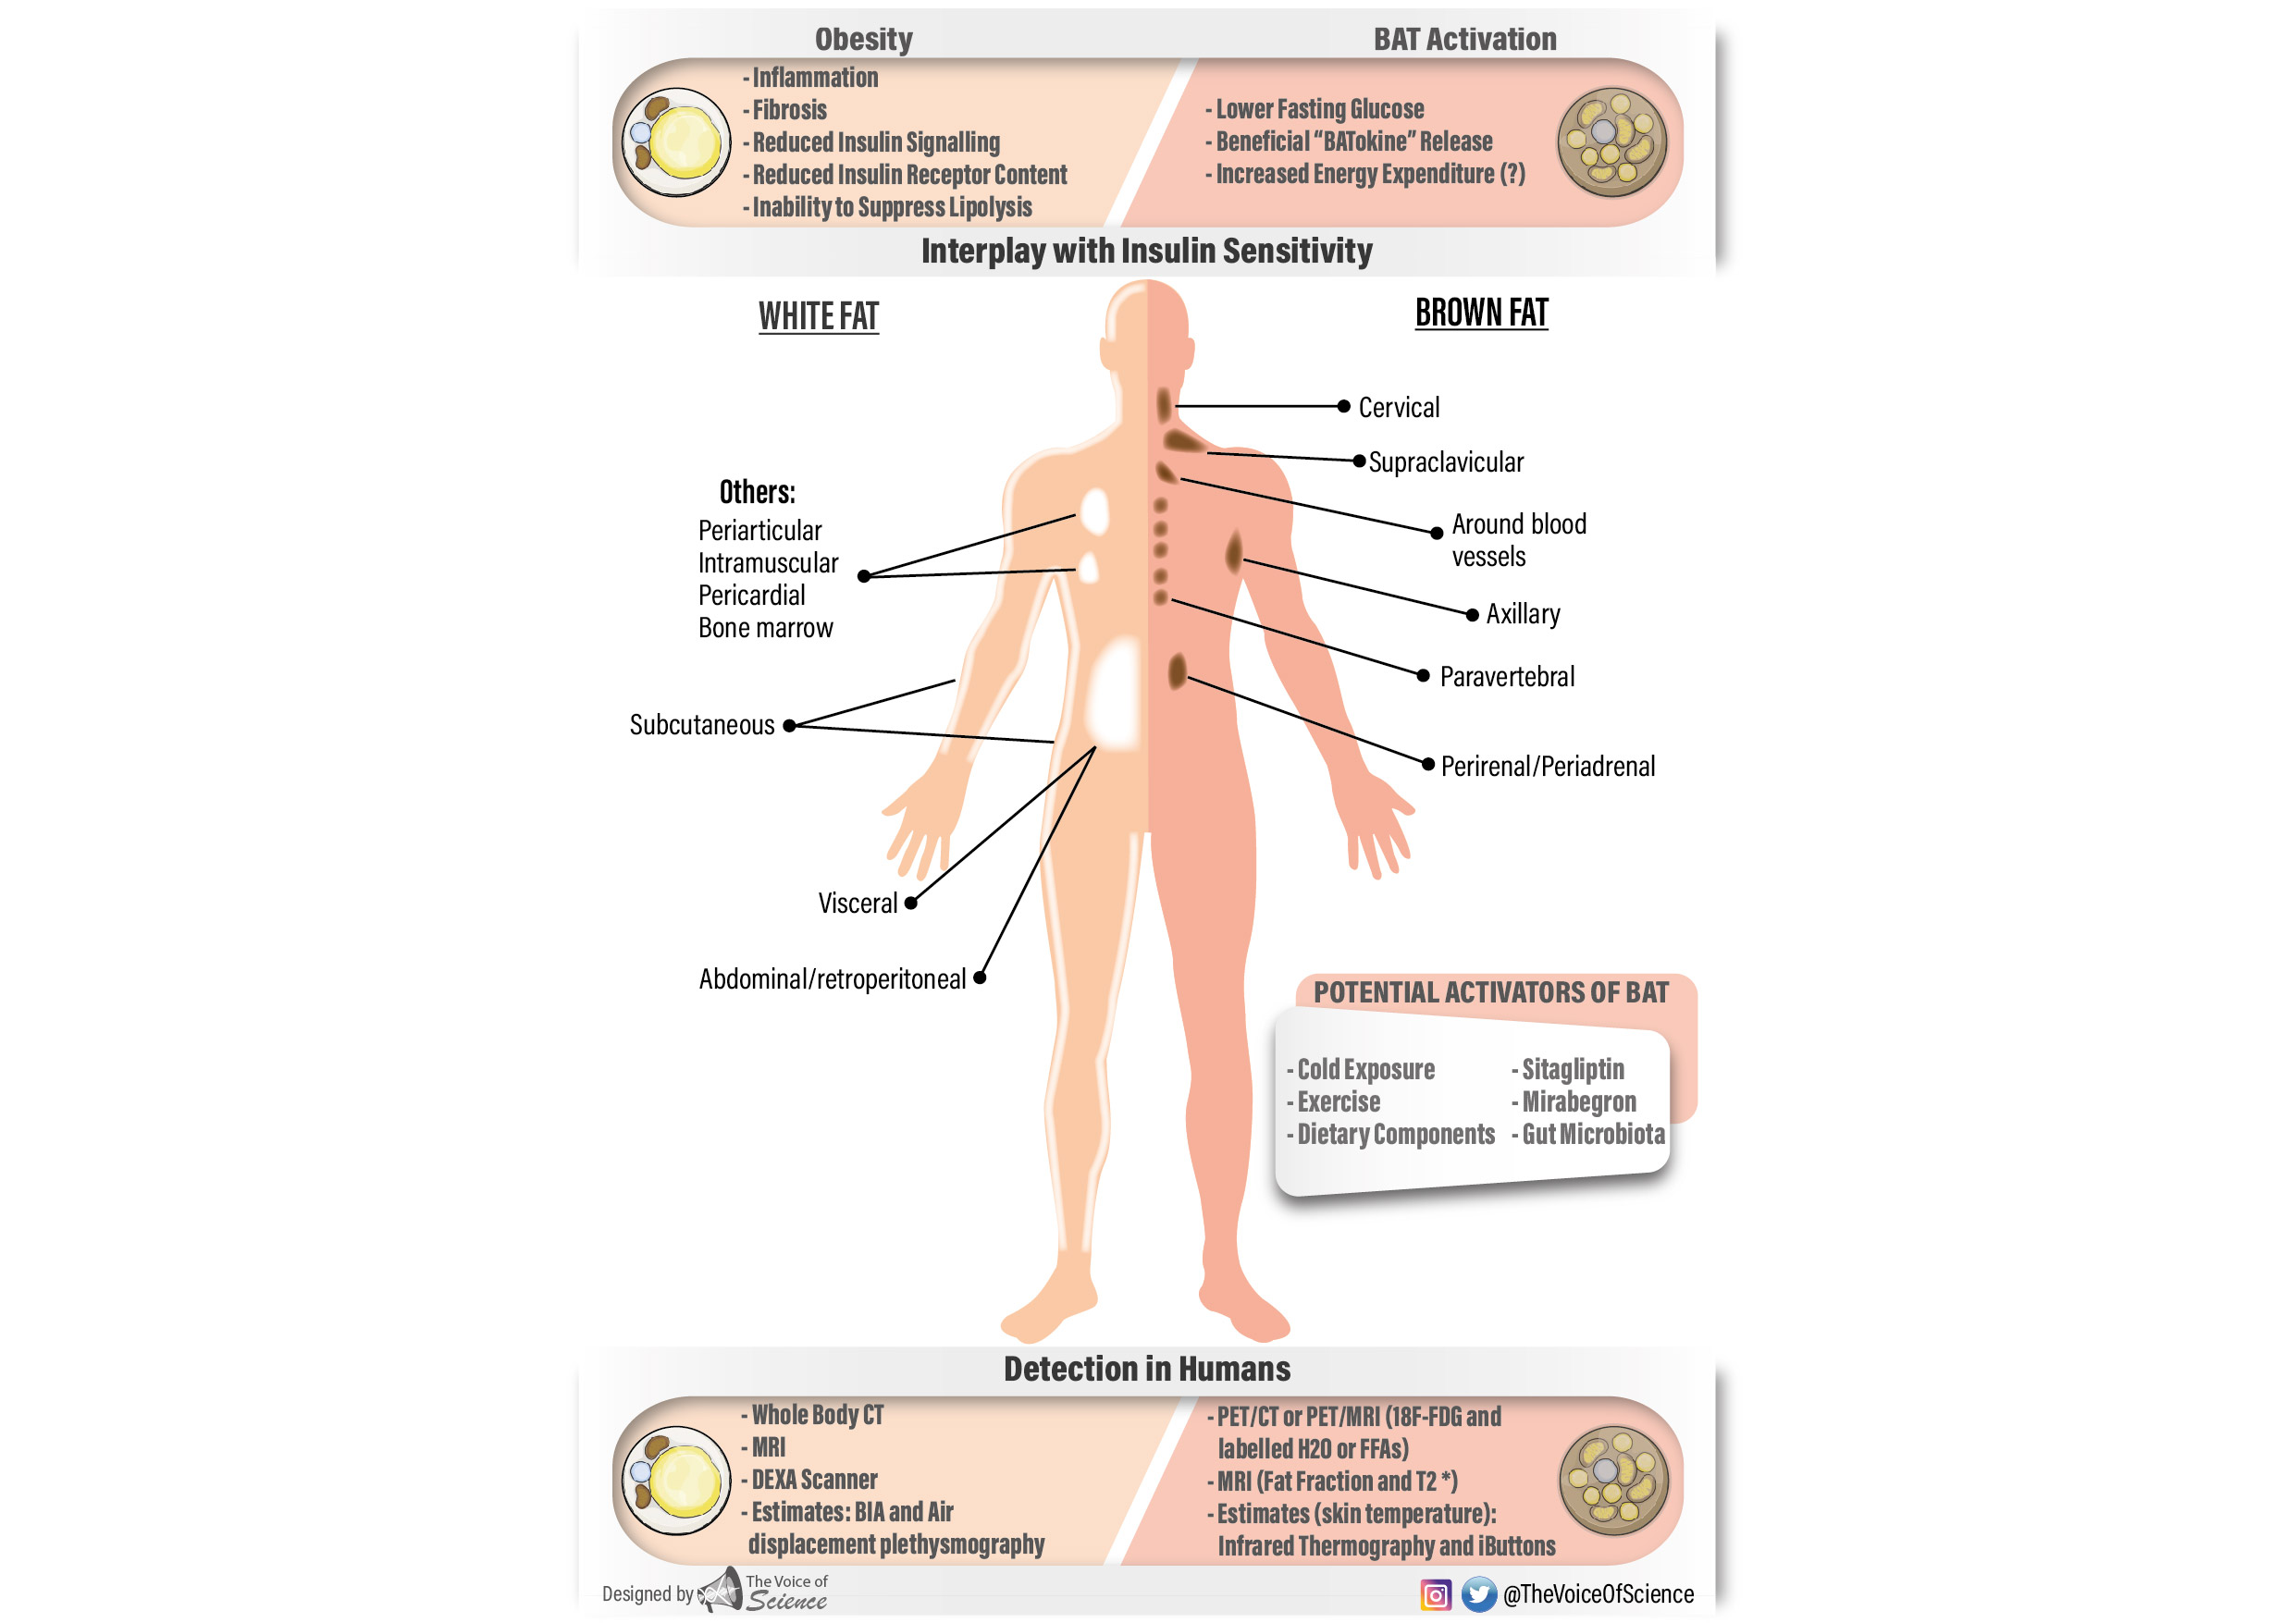 Brown adipose tissue in humans